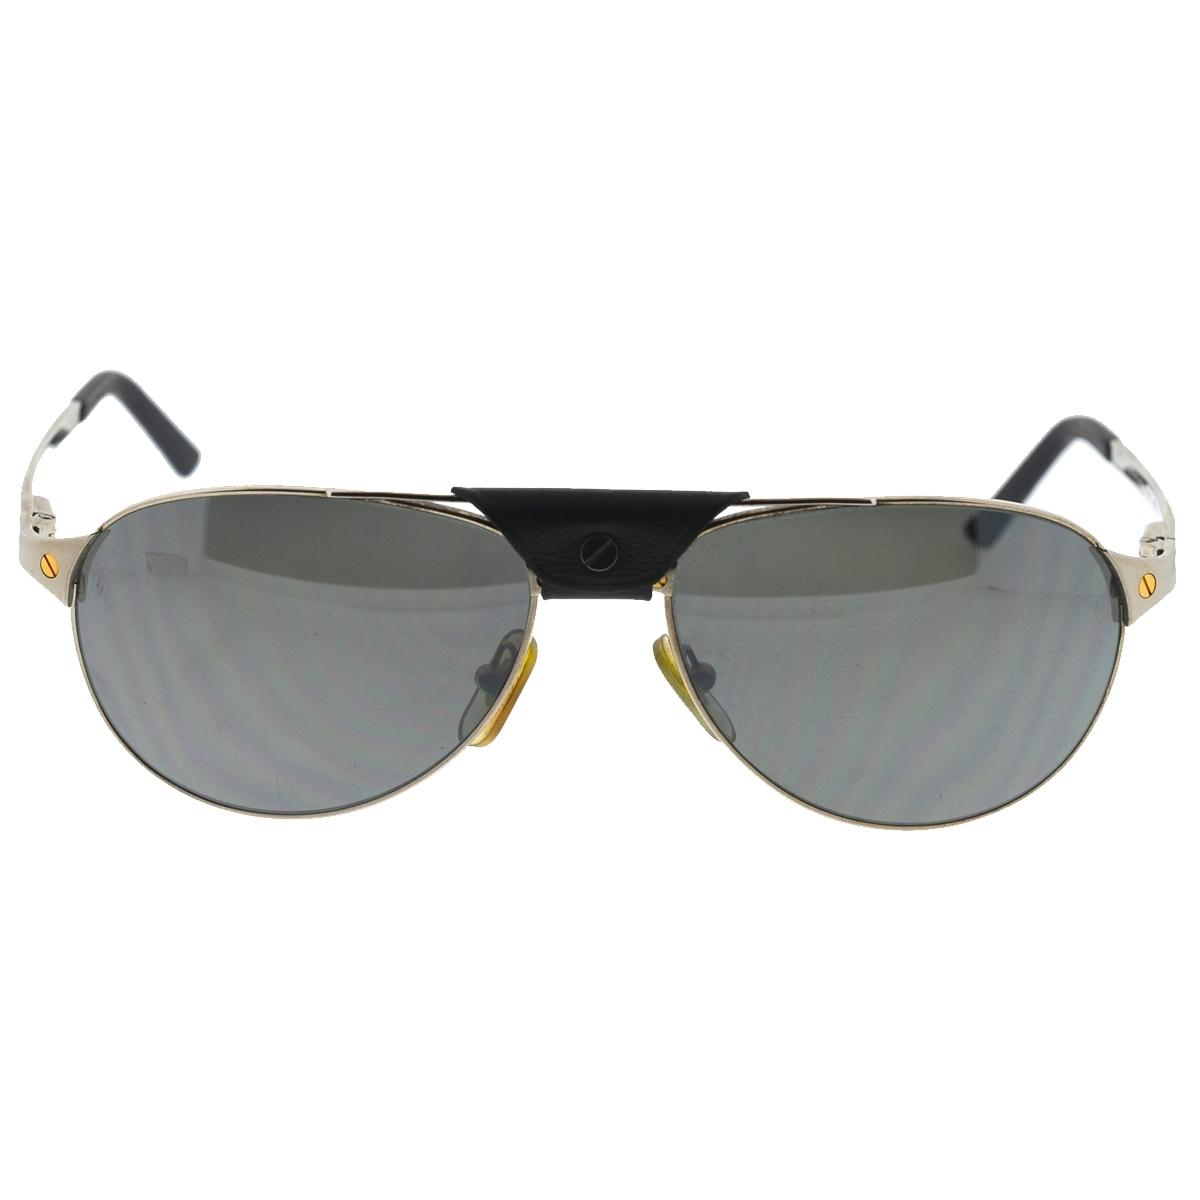 Cartier Silver Santos Dumont 130 Aviator Men' Sunglasses